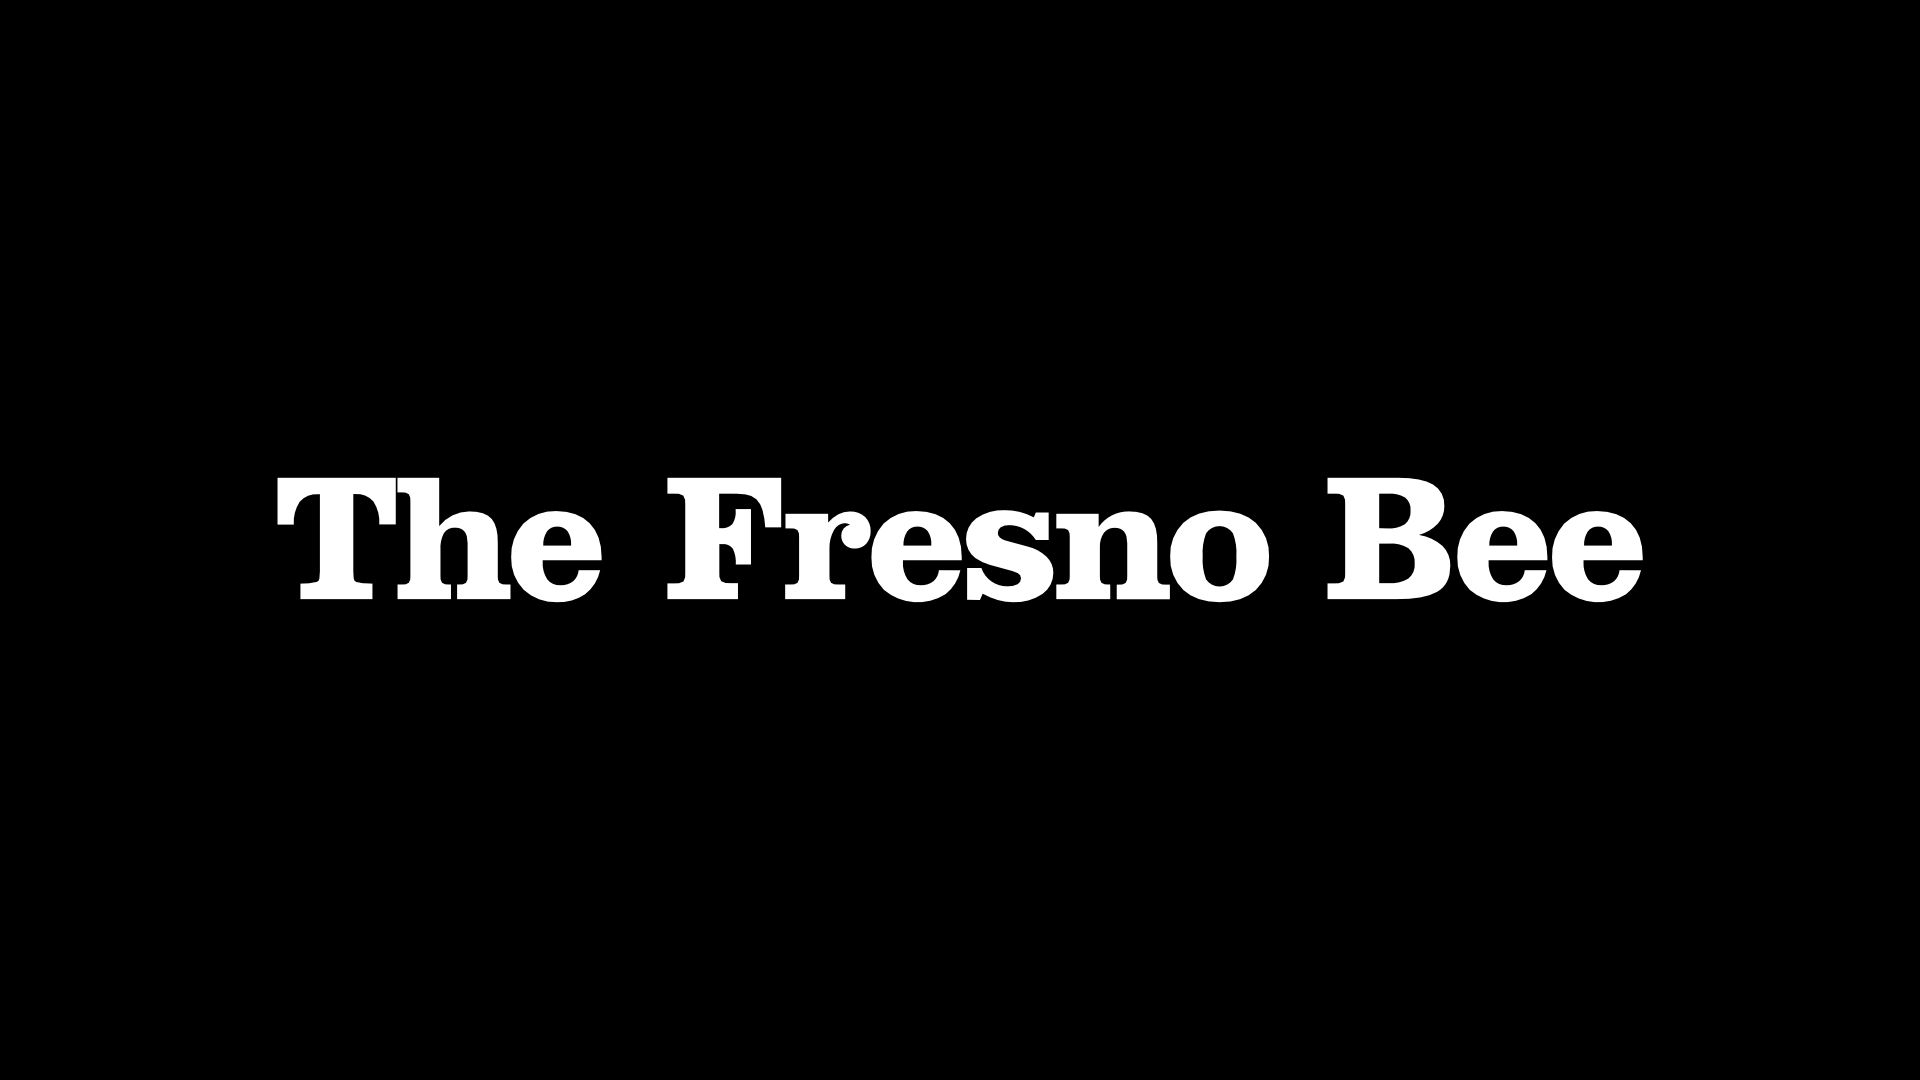 The Fresno Bee Logo Cover Photo